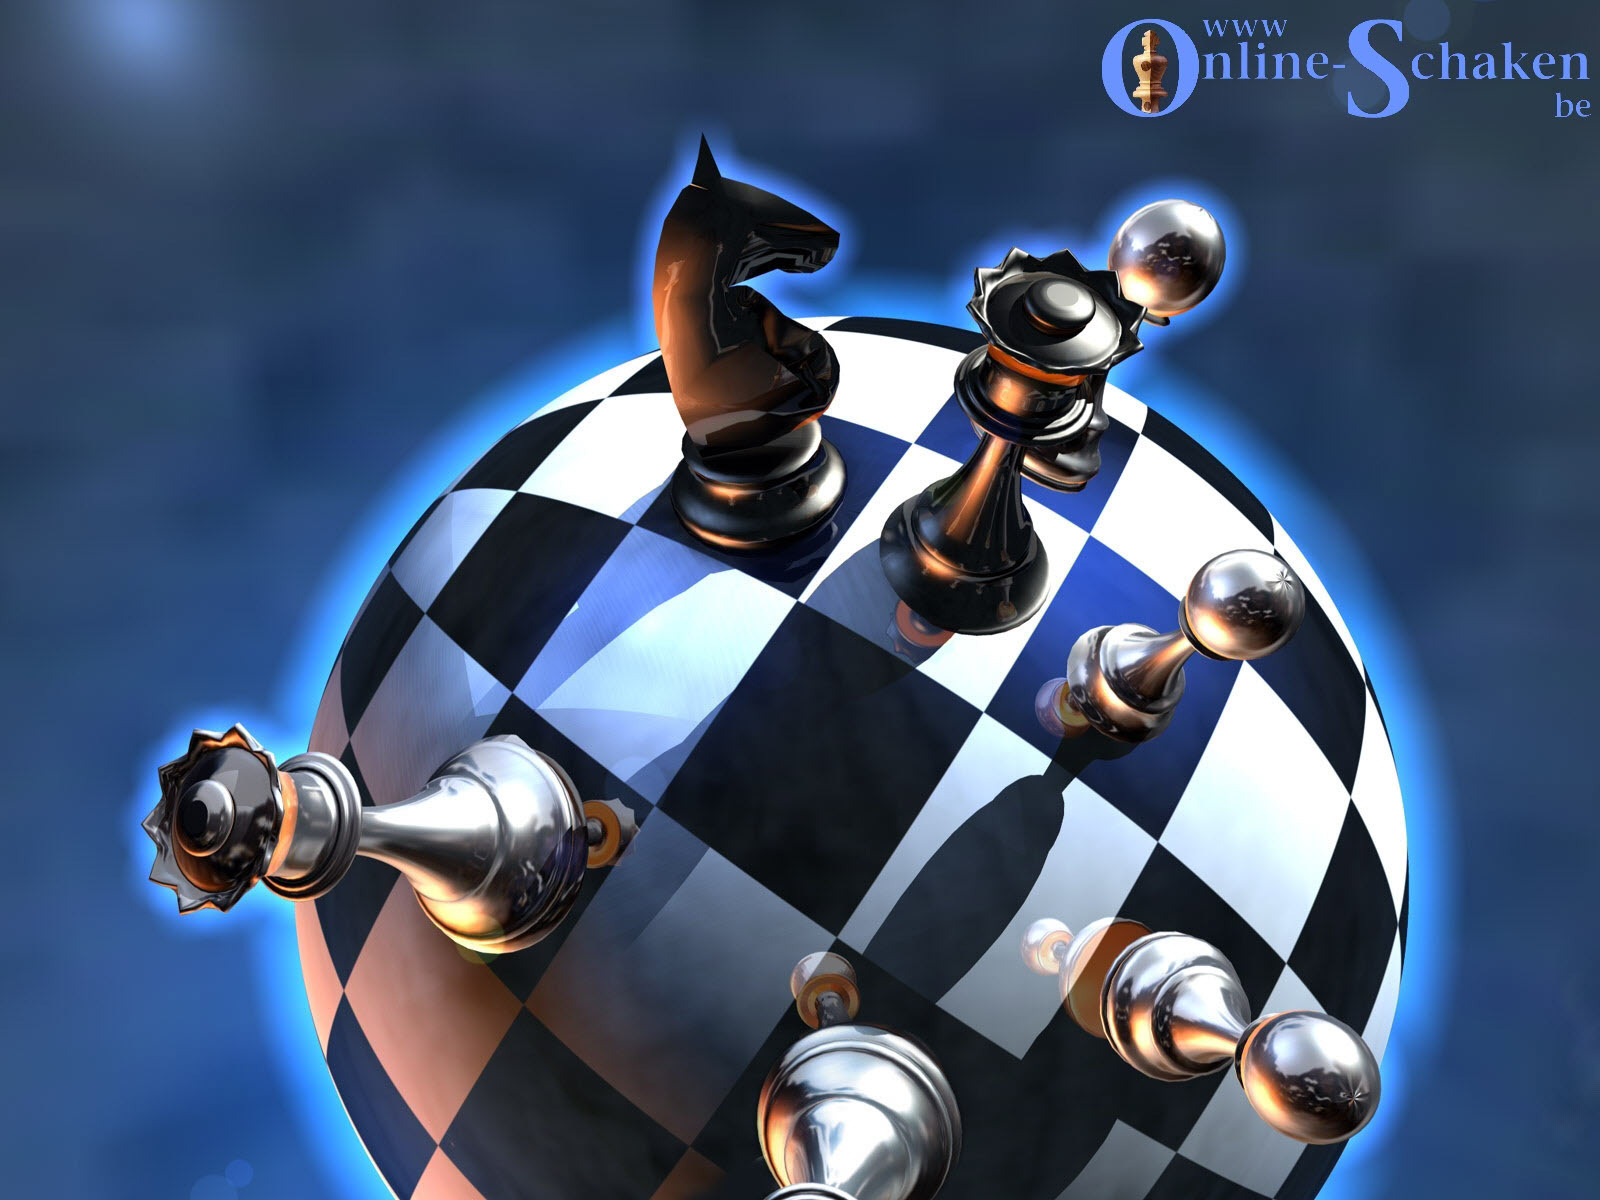 Chess images chess HD wallpaper and background photos 22859677